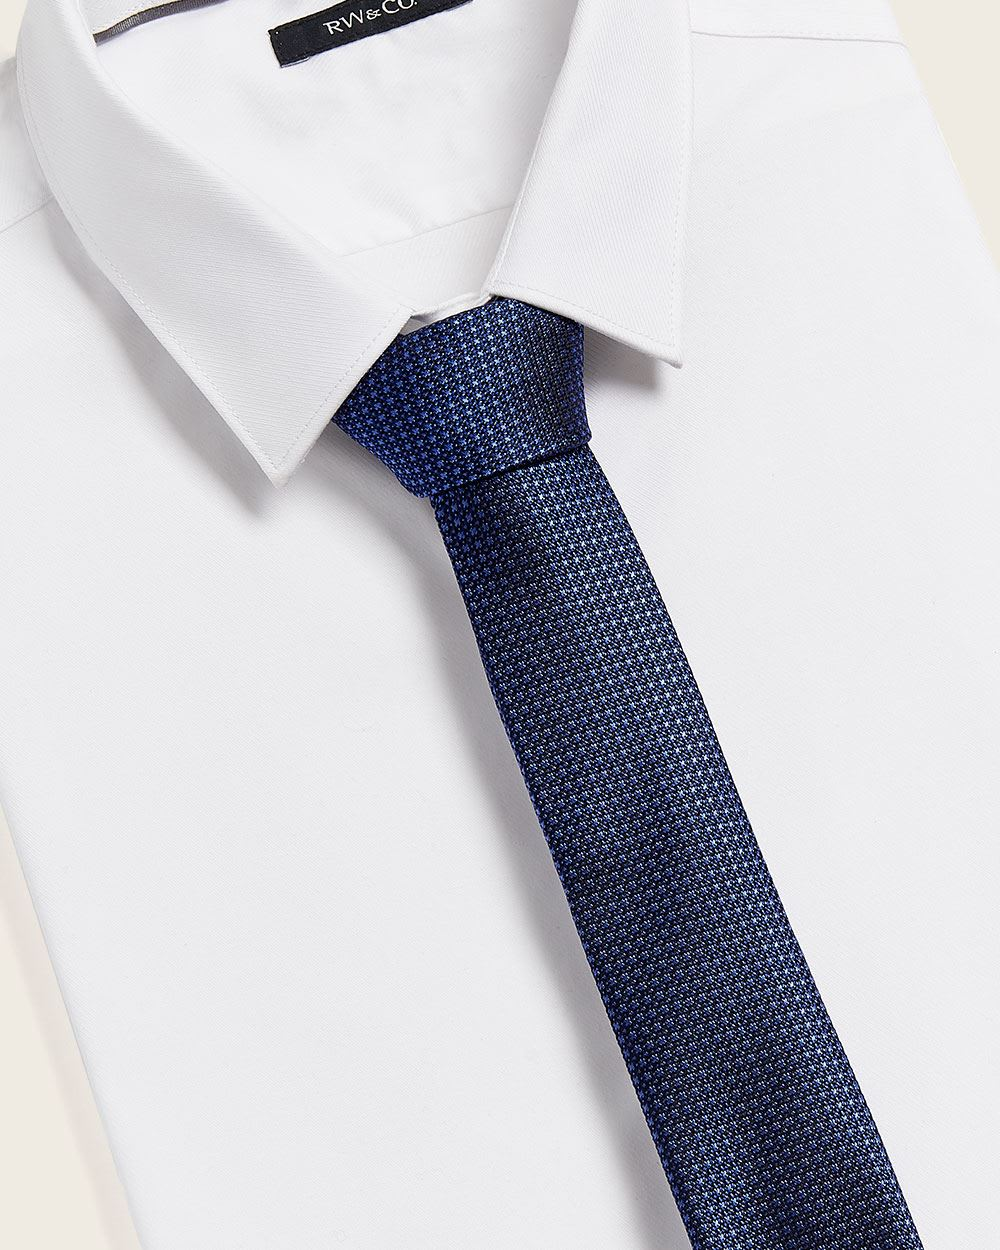 Regular textured blue tone tie